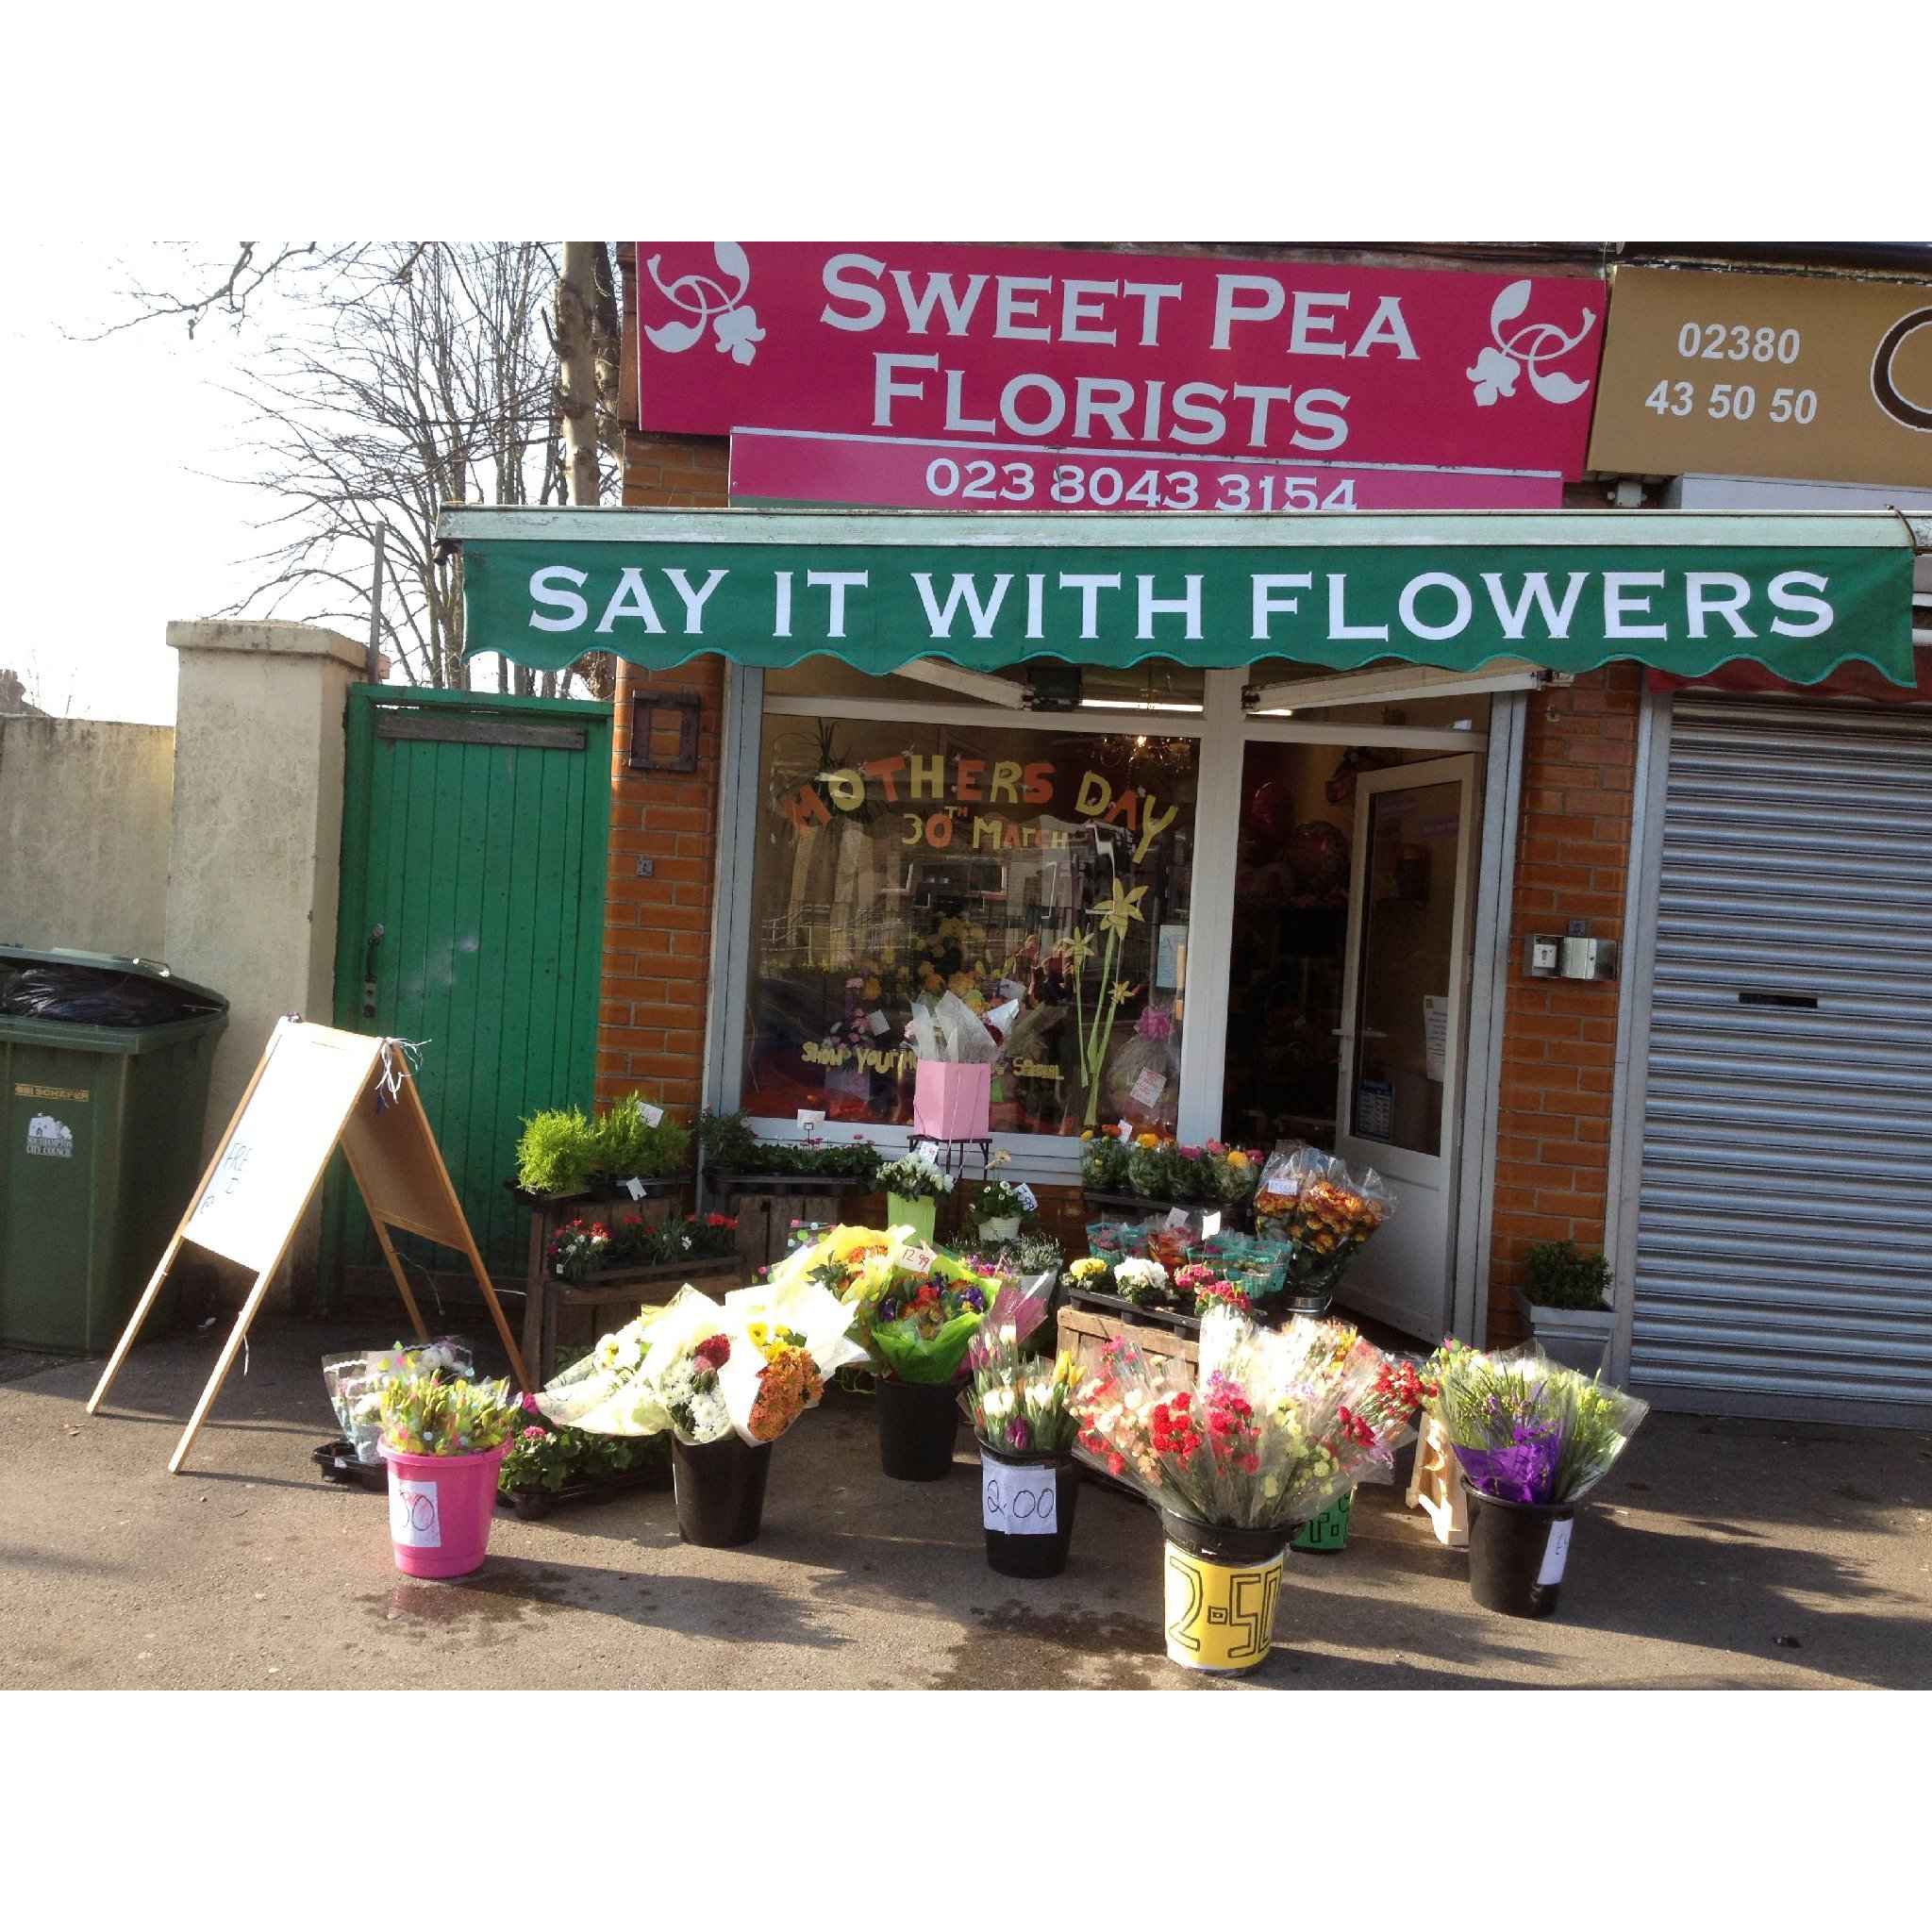 image of Sweet Pea Florists